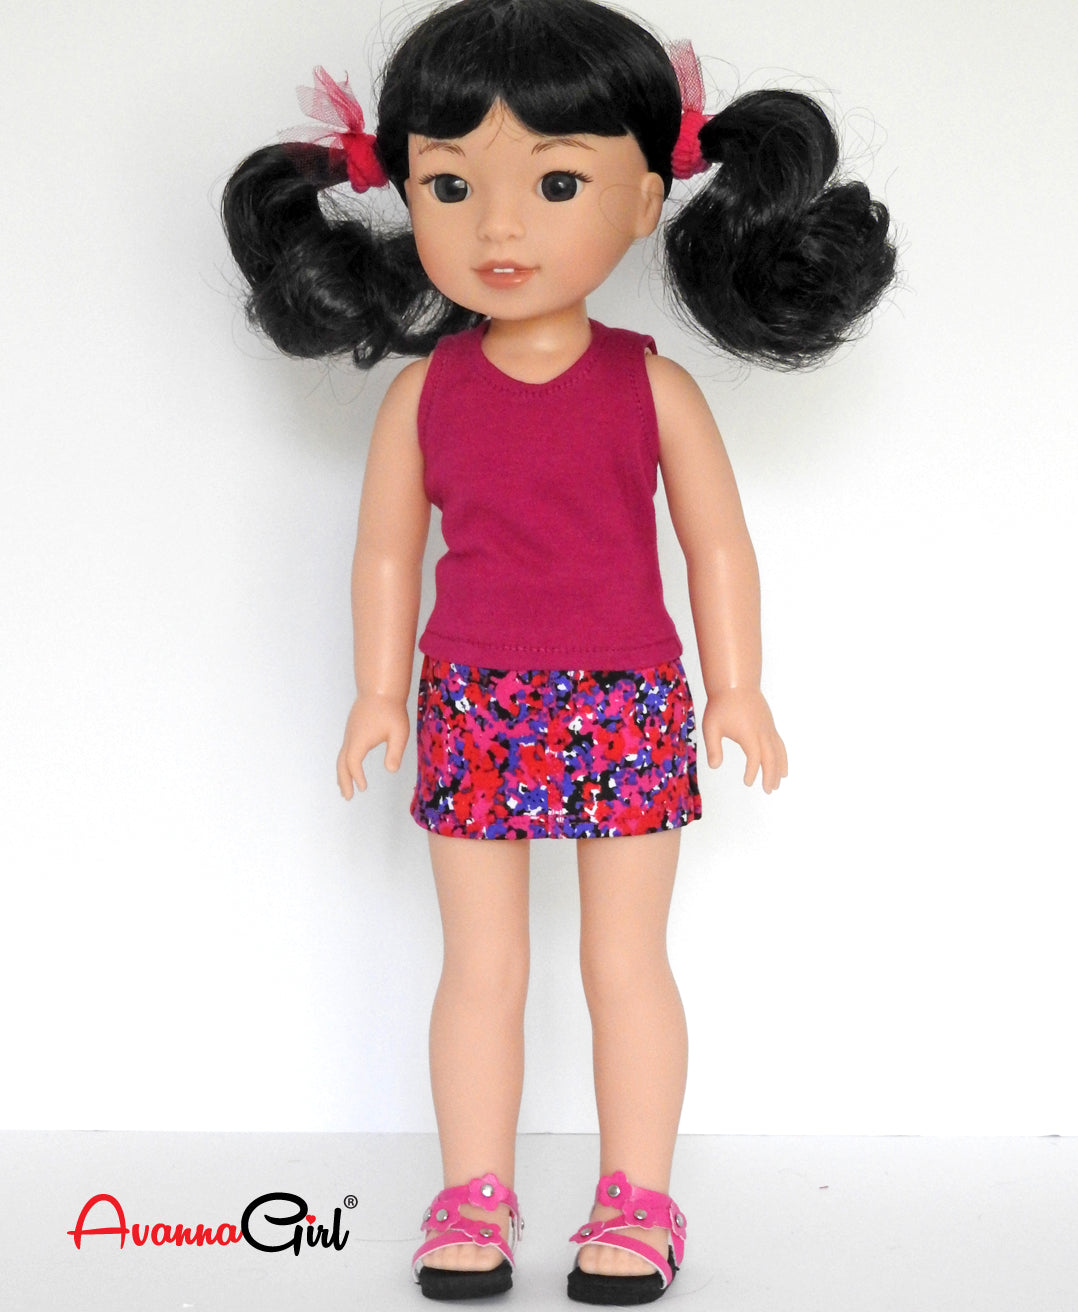 14 Inch Doll Tank Top and Floral Denim Mini Skirt fits Wellie Wishers Doll